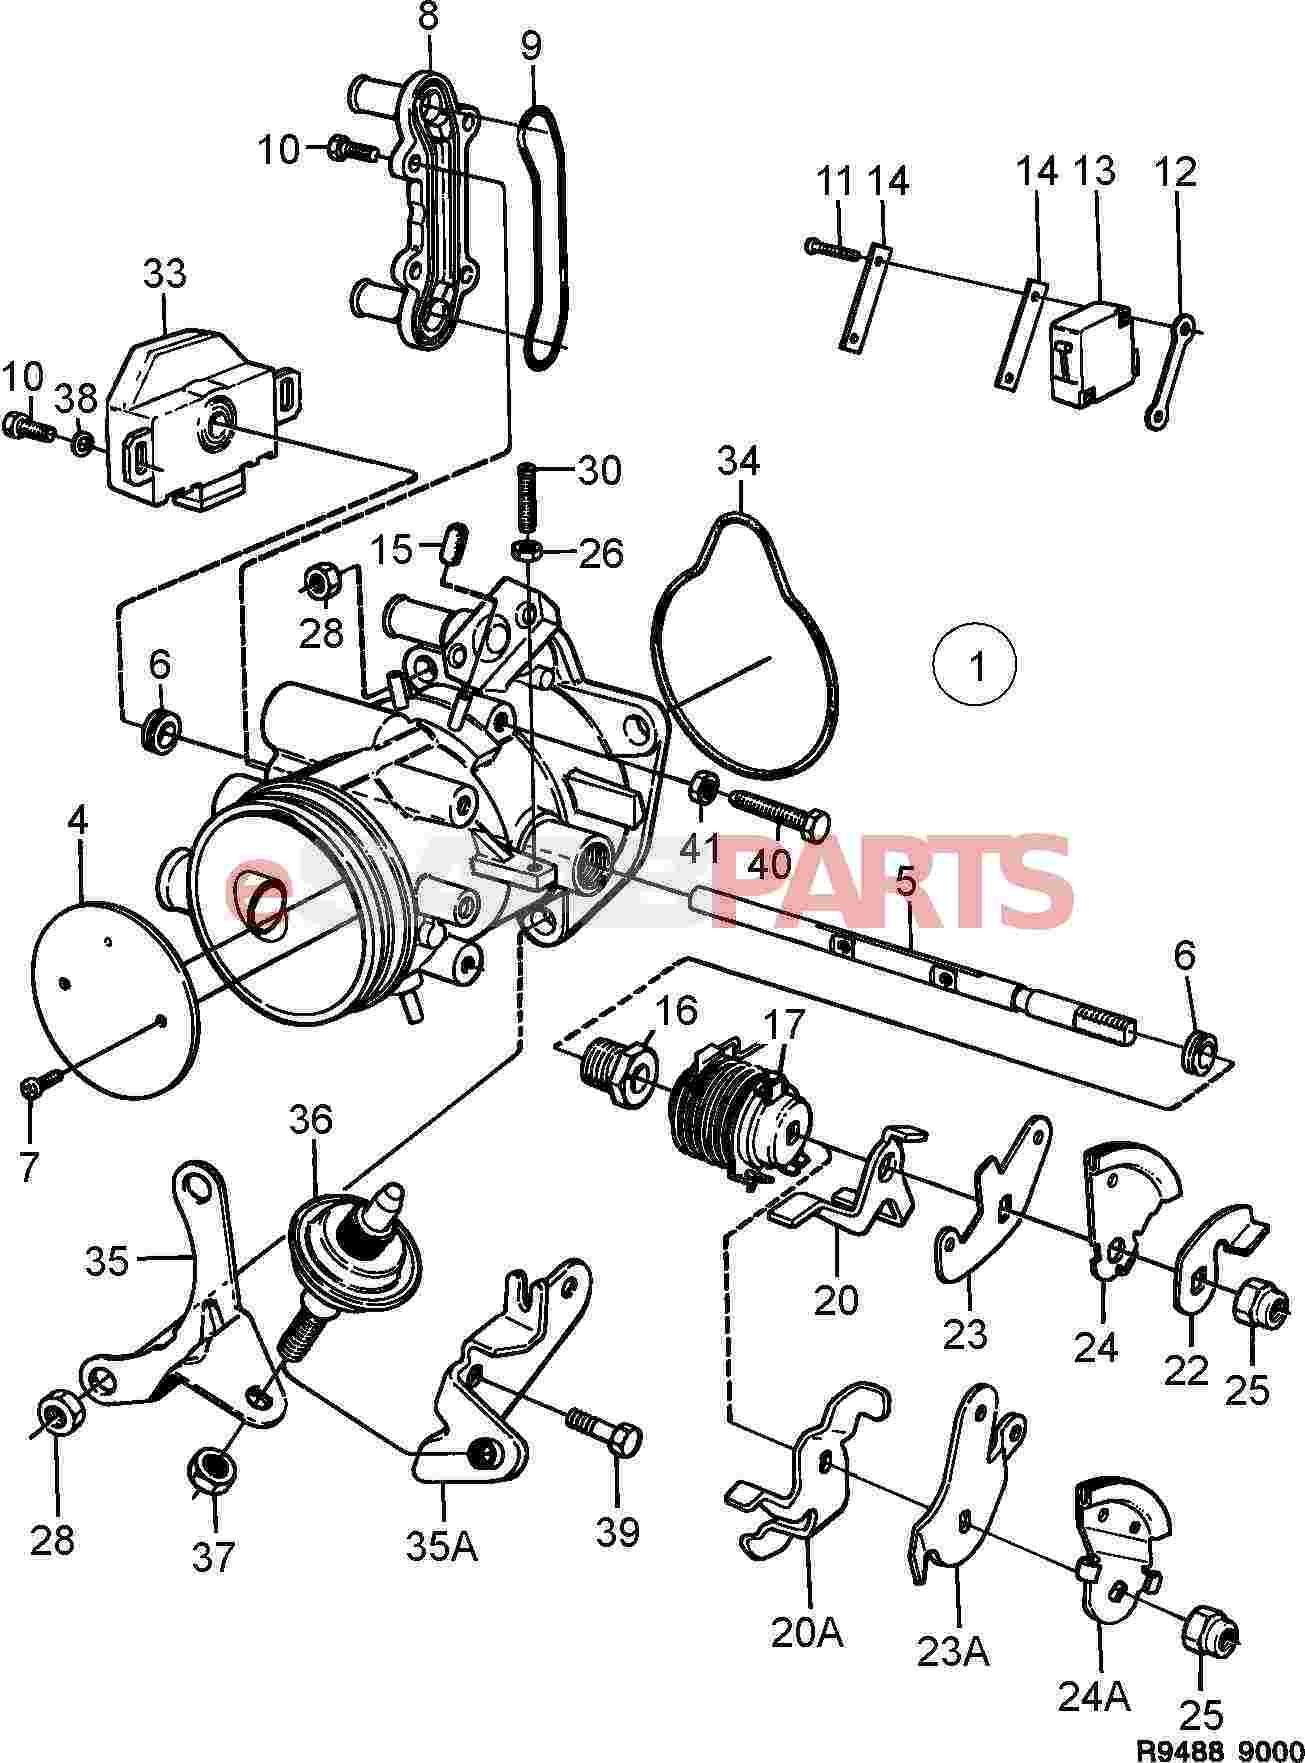 saab 900 ignition wiring diagram picture